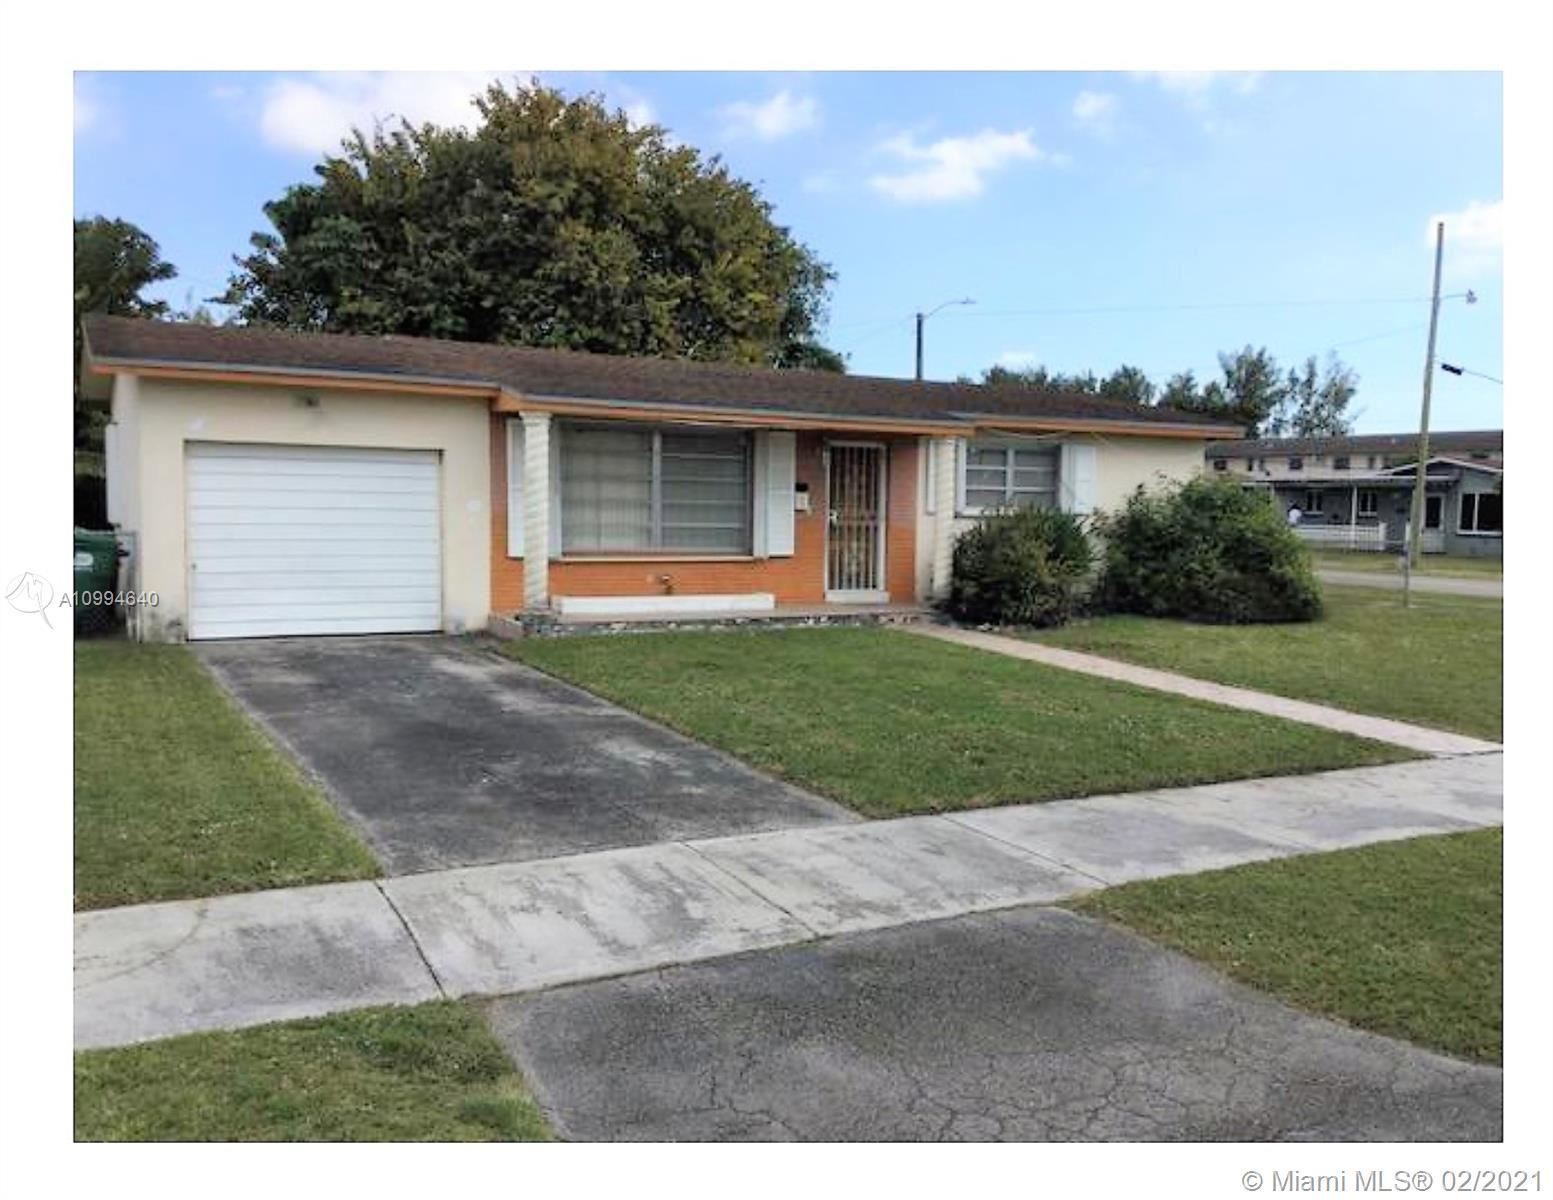 12001 NW 22nd Pl, Miami, FL 33167 - #: A10994640